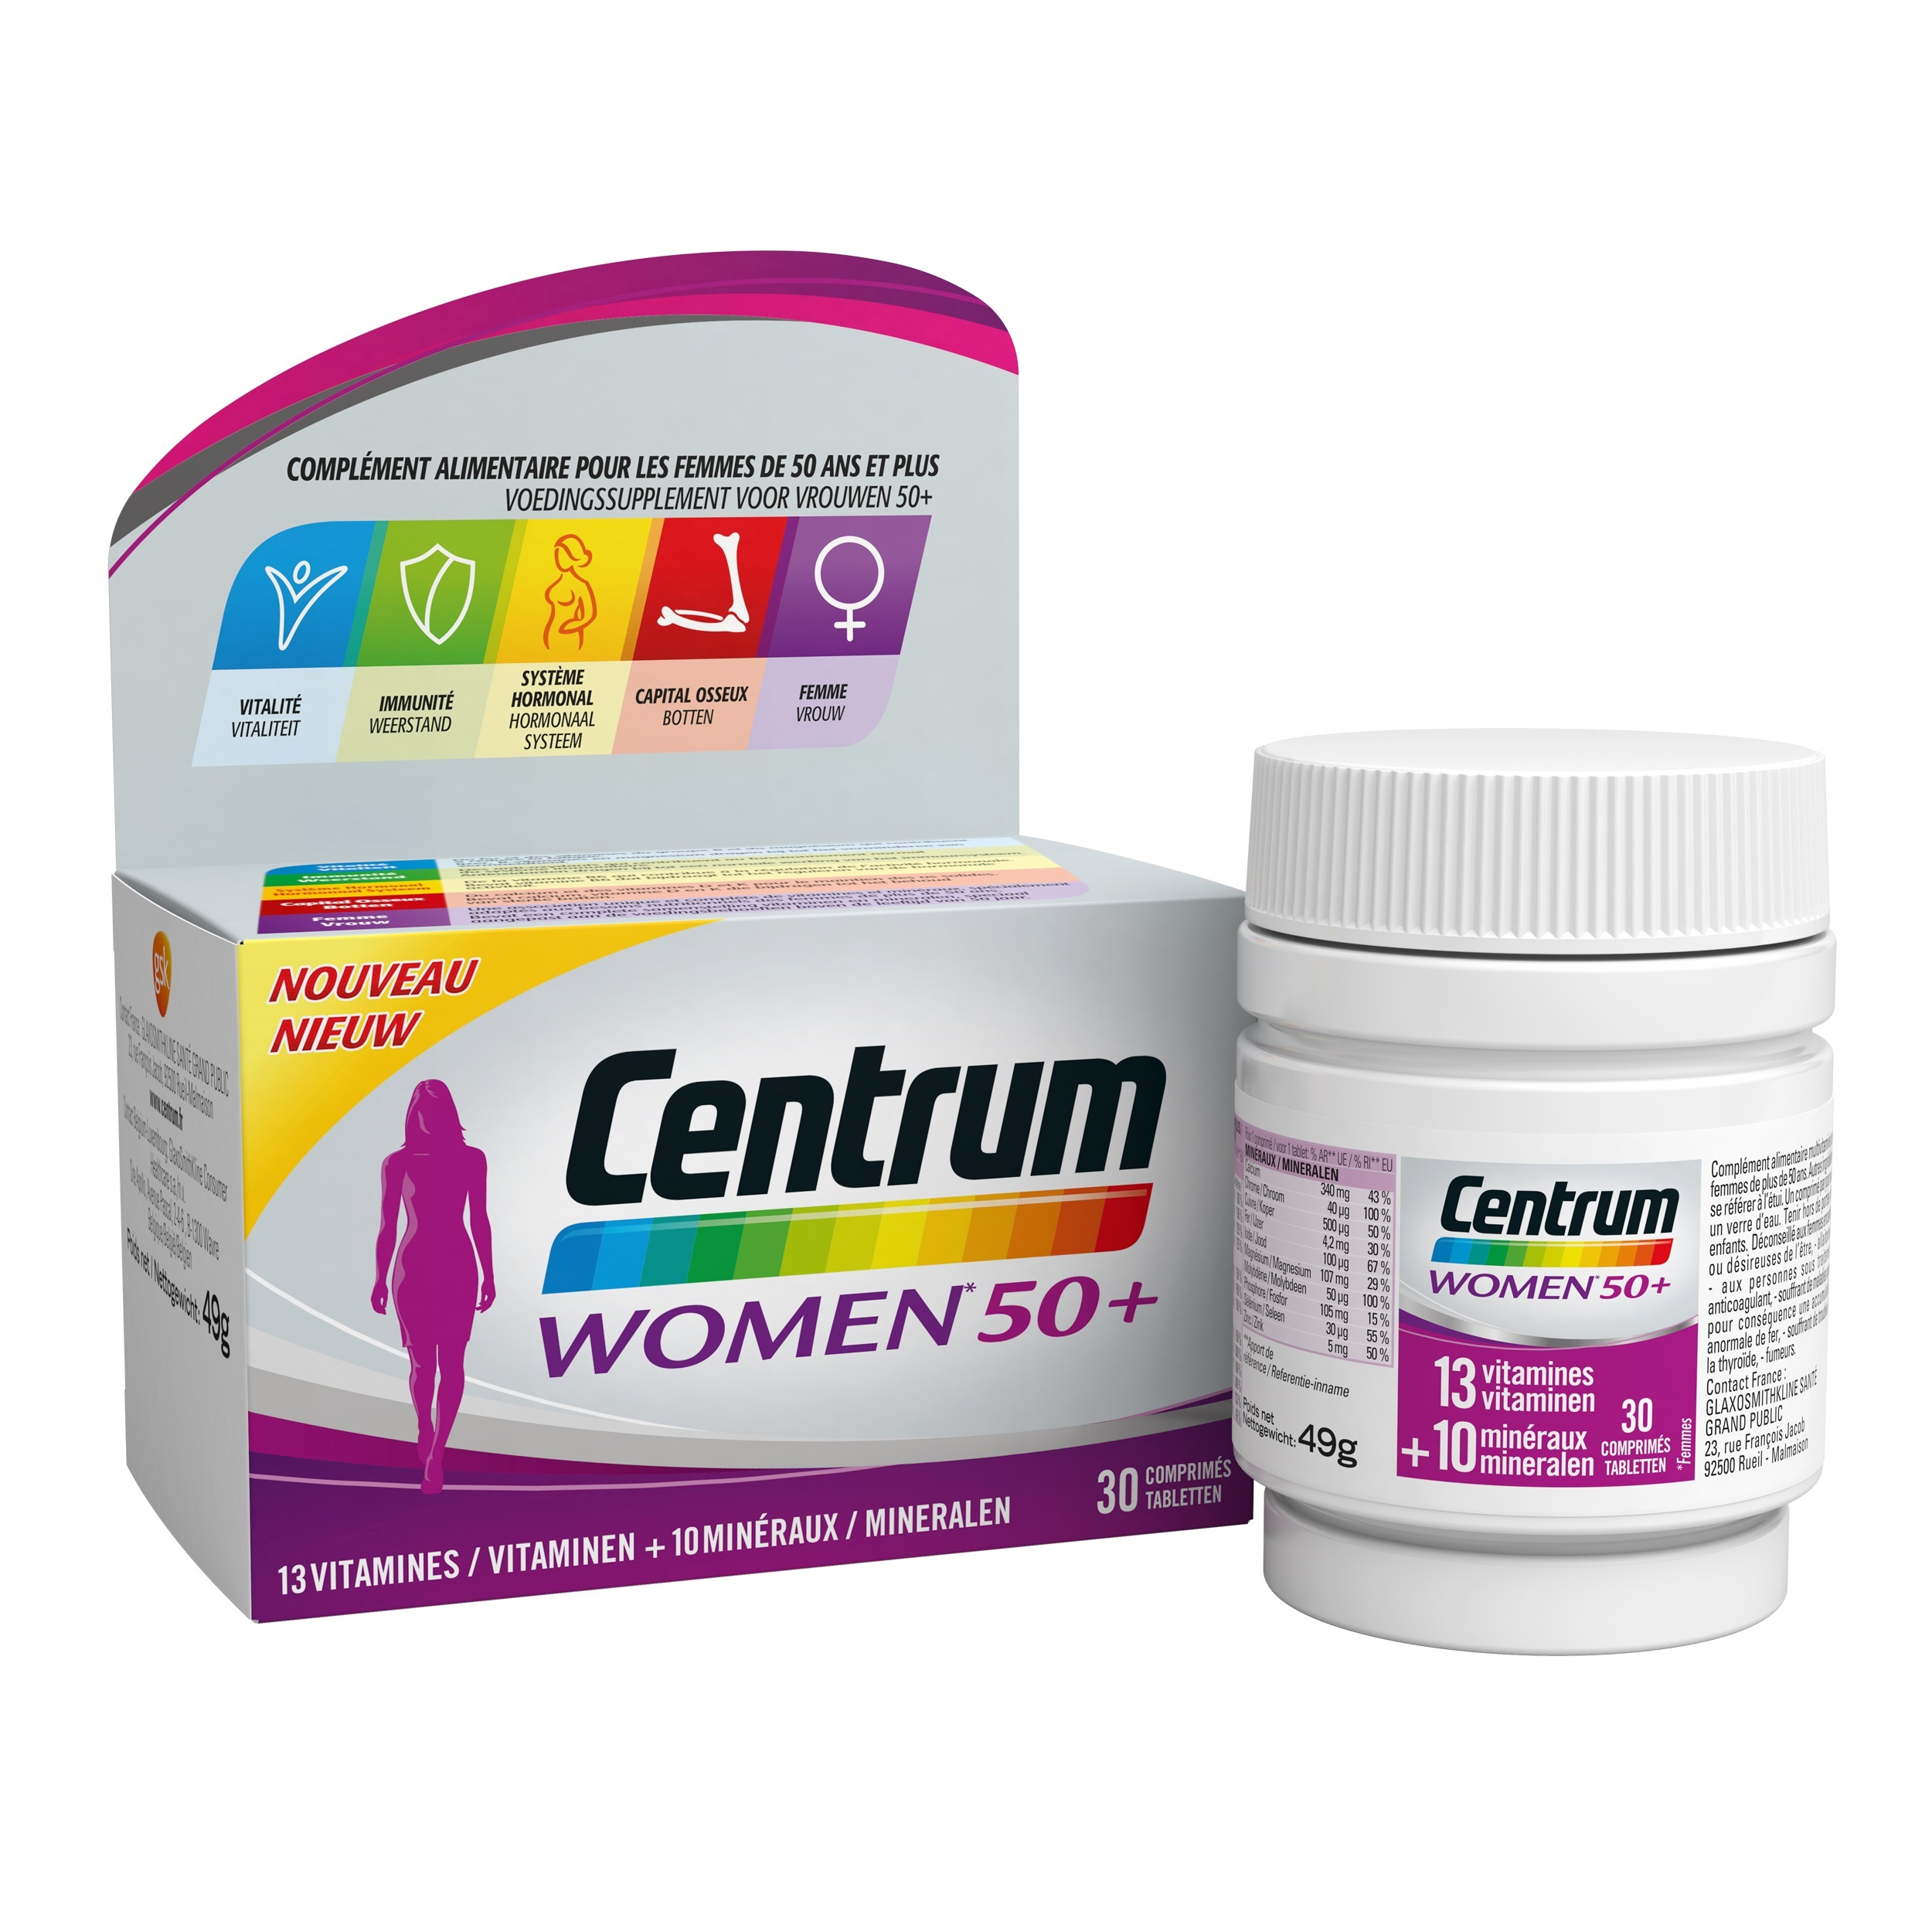 Image of Centrum Women 50+